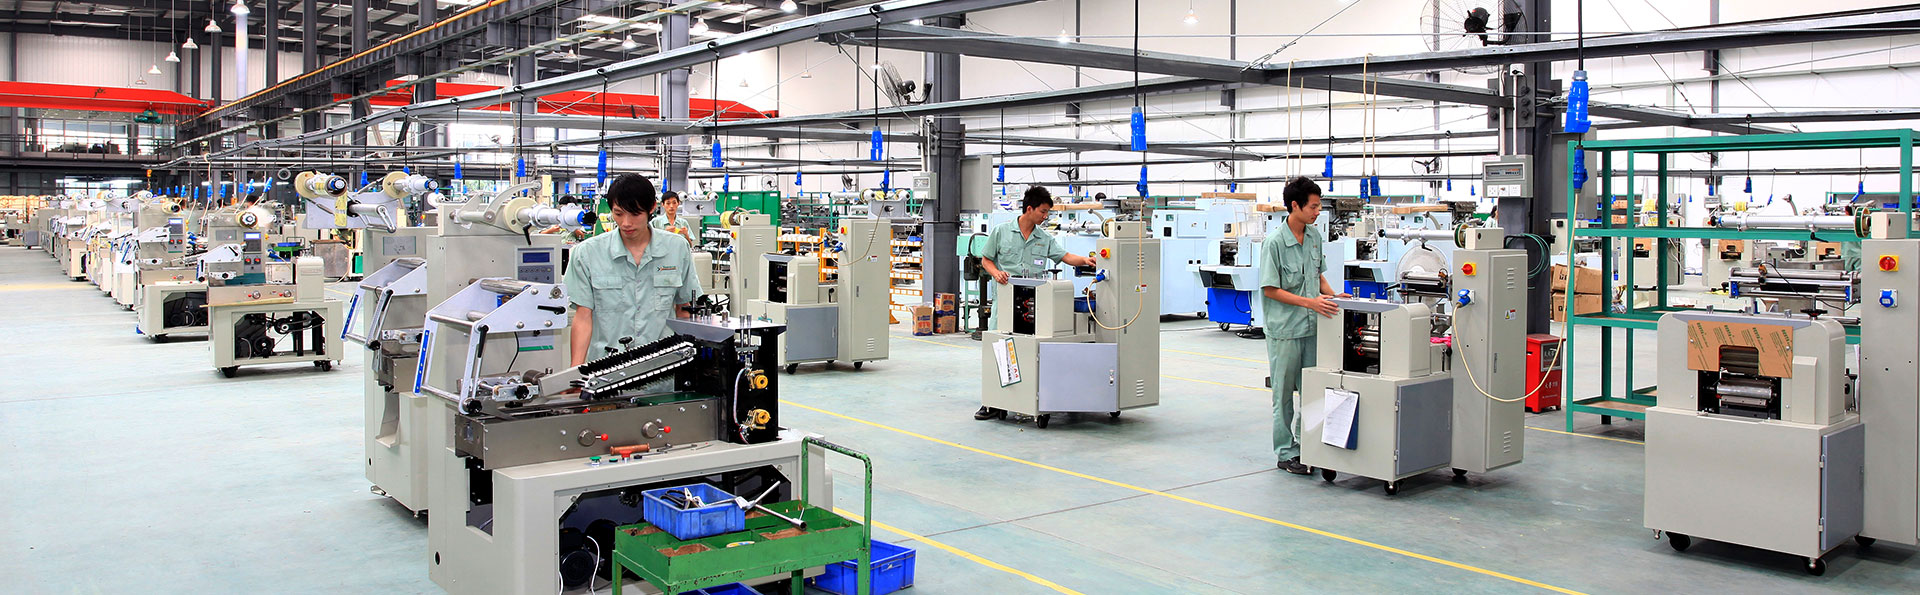 Soontrue Horizontal Packing machine plant